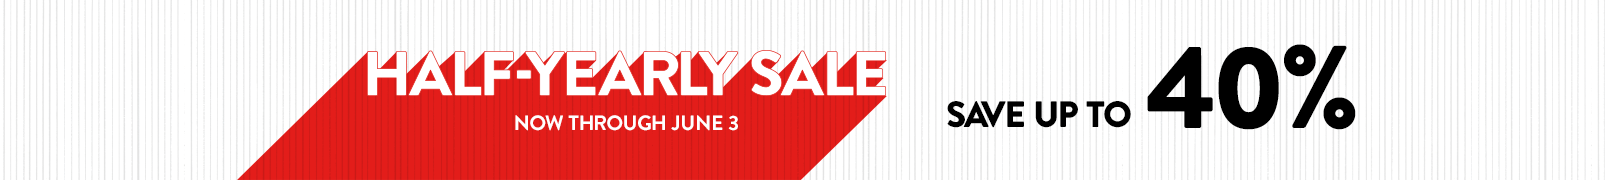 Half-Yearly Sale. Save up to 40% through June 3.